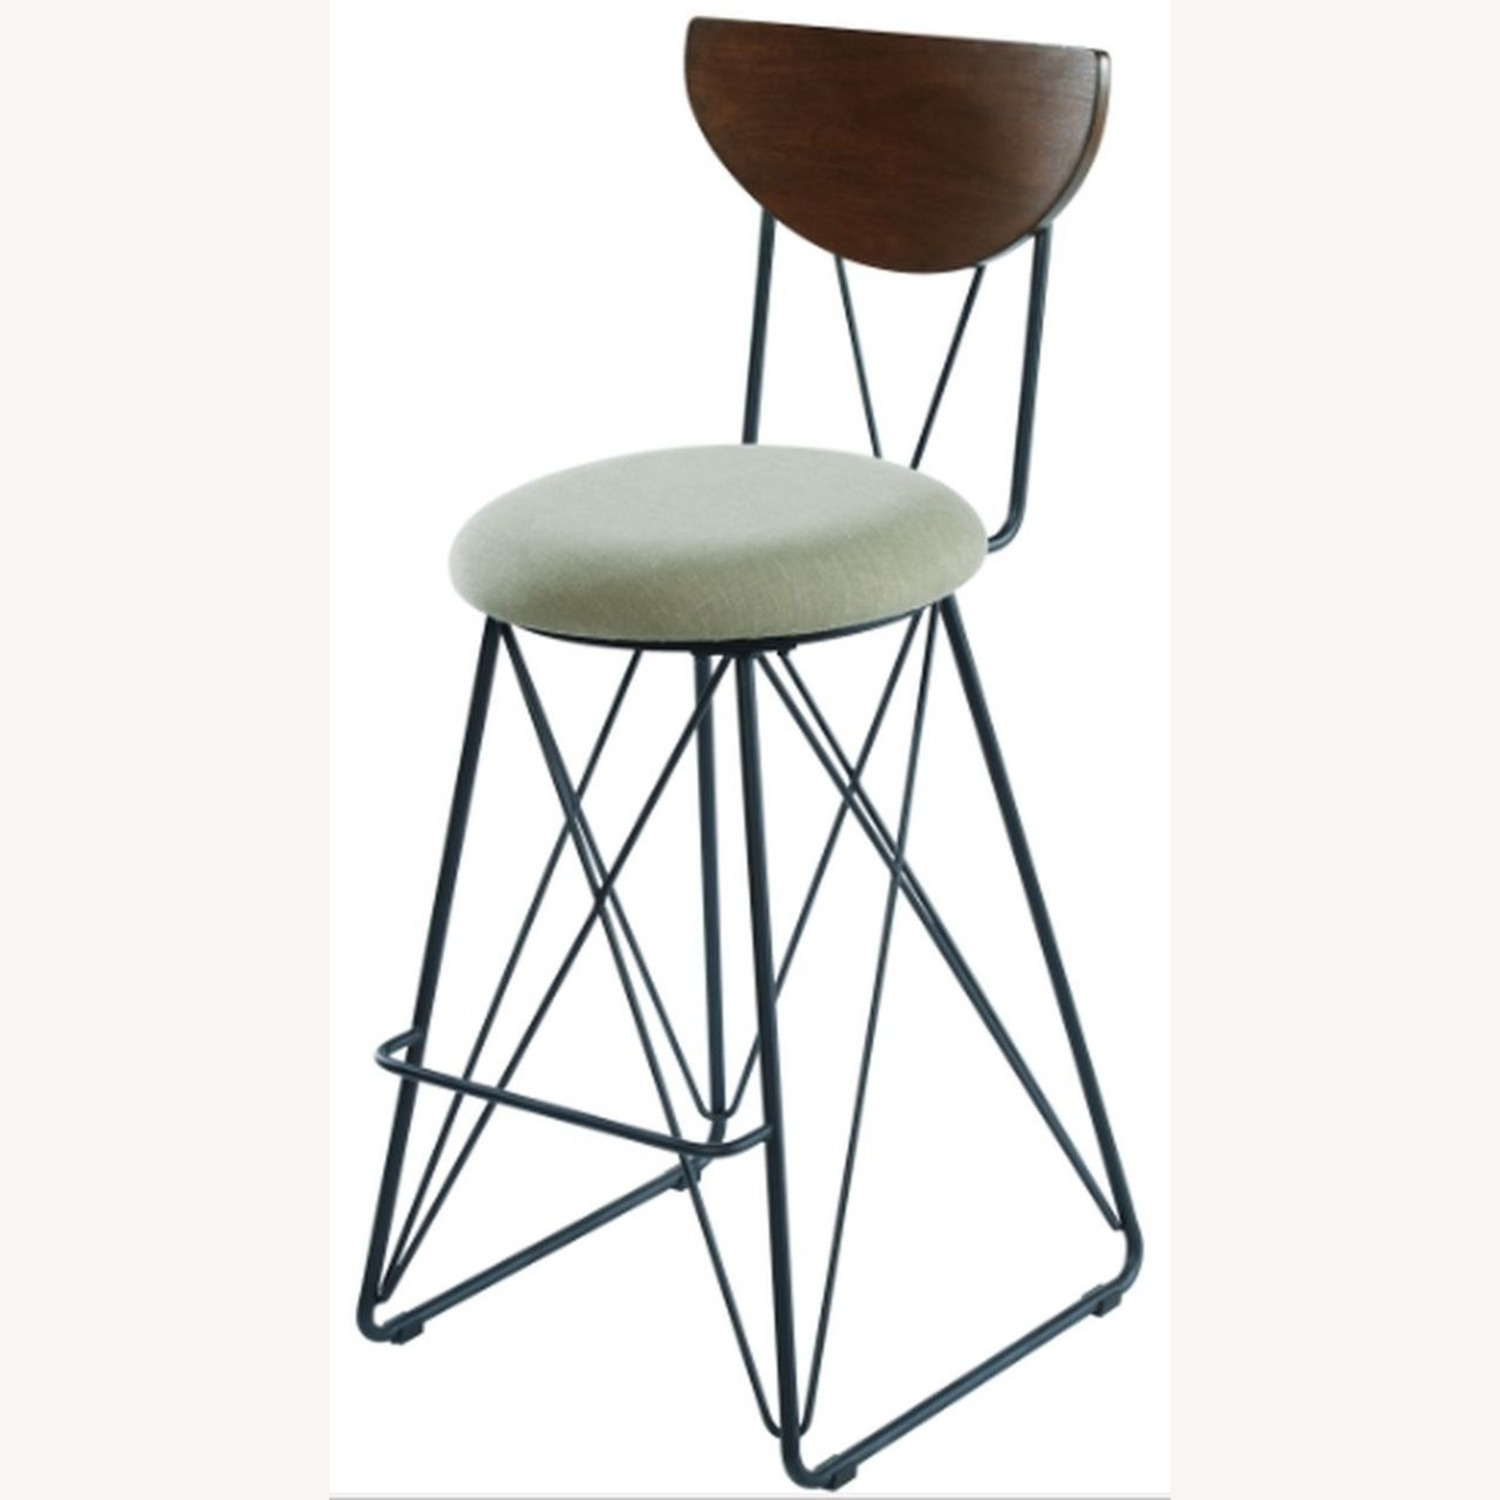 Modern Bar Stool In Linen-Like Green Fabric - image-1